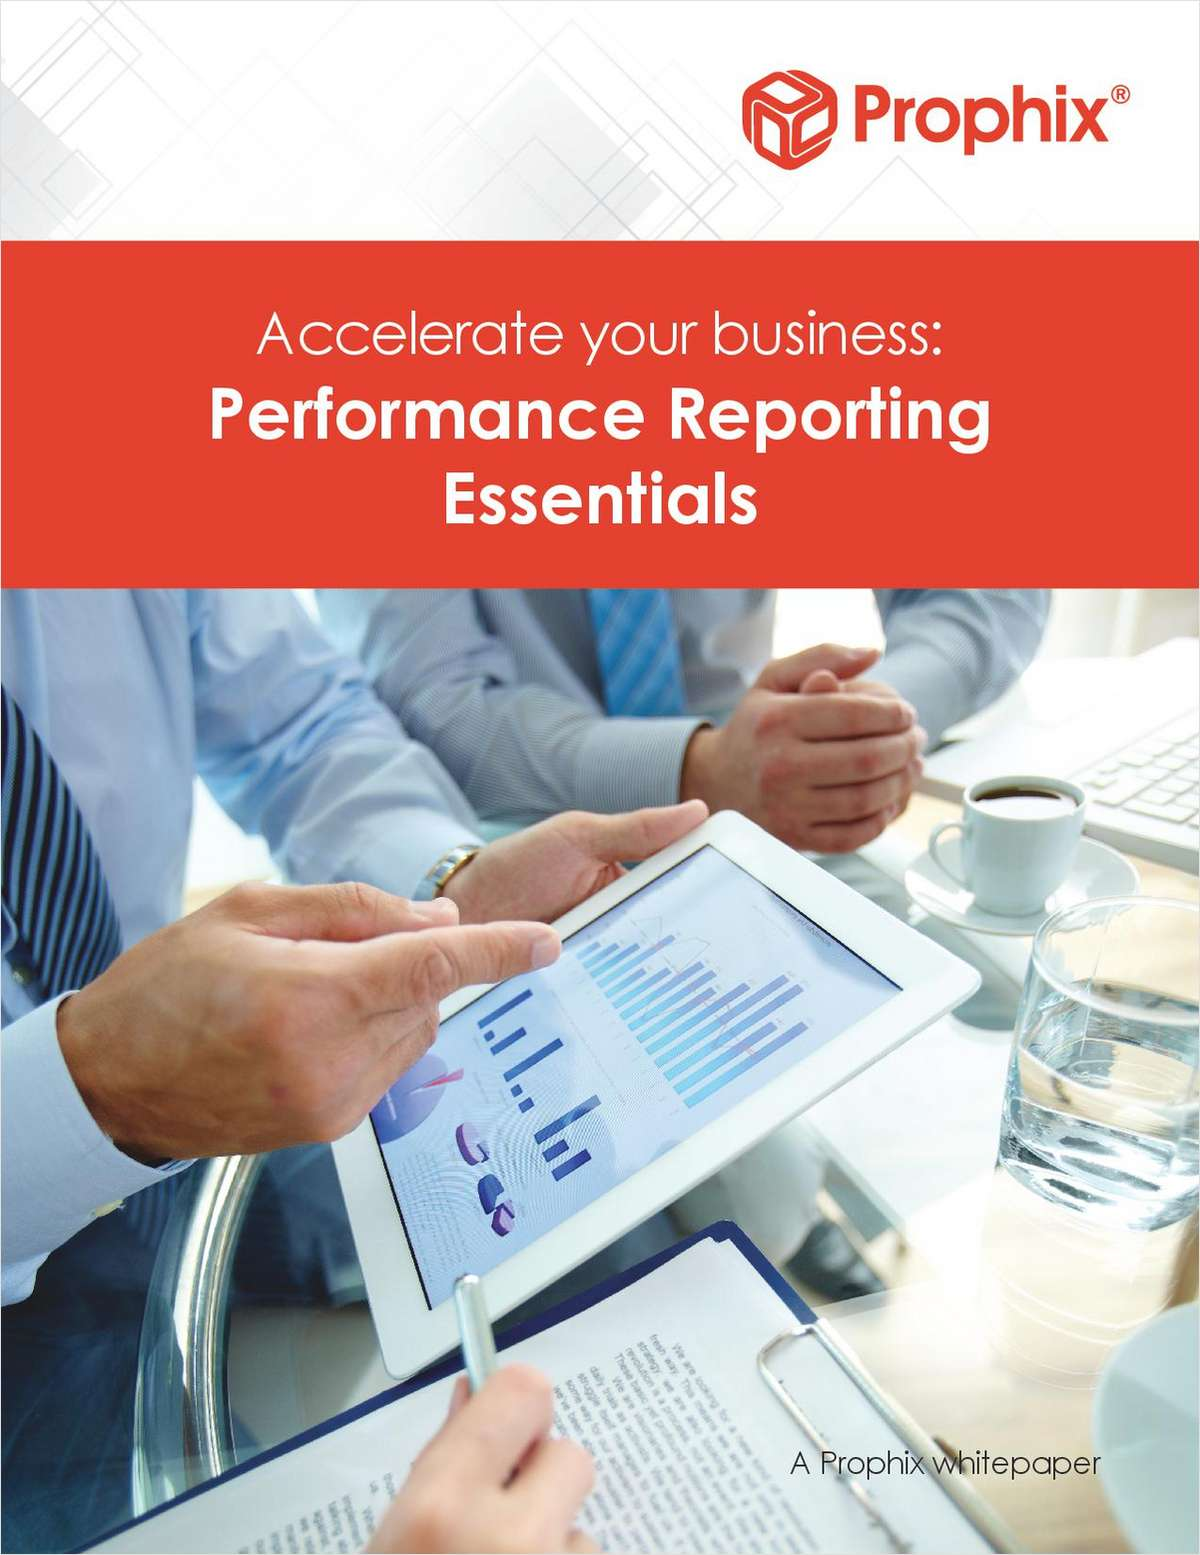 Accelerate your business: Performance Reporting Essentials